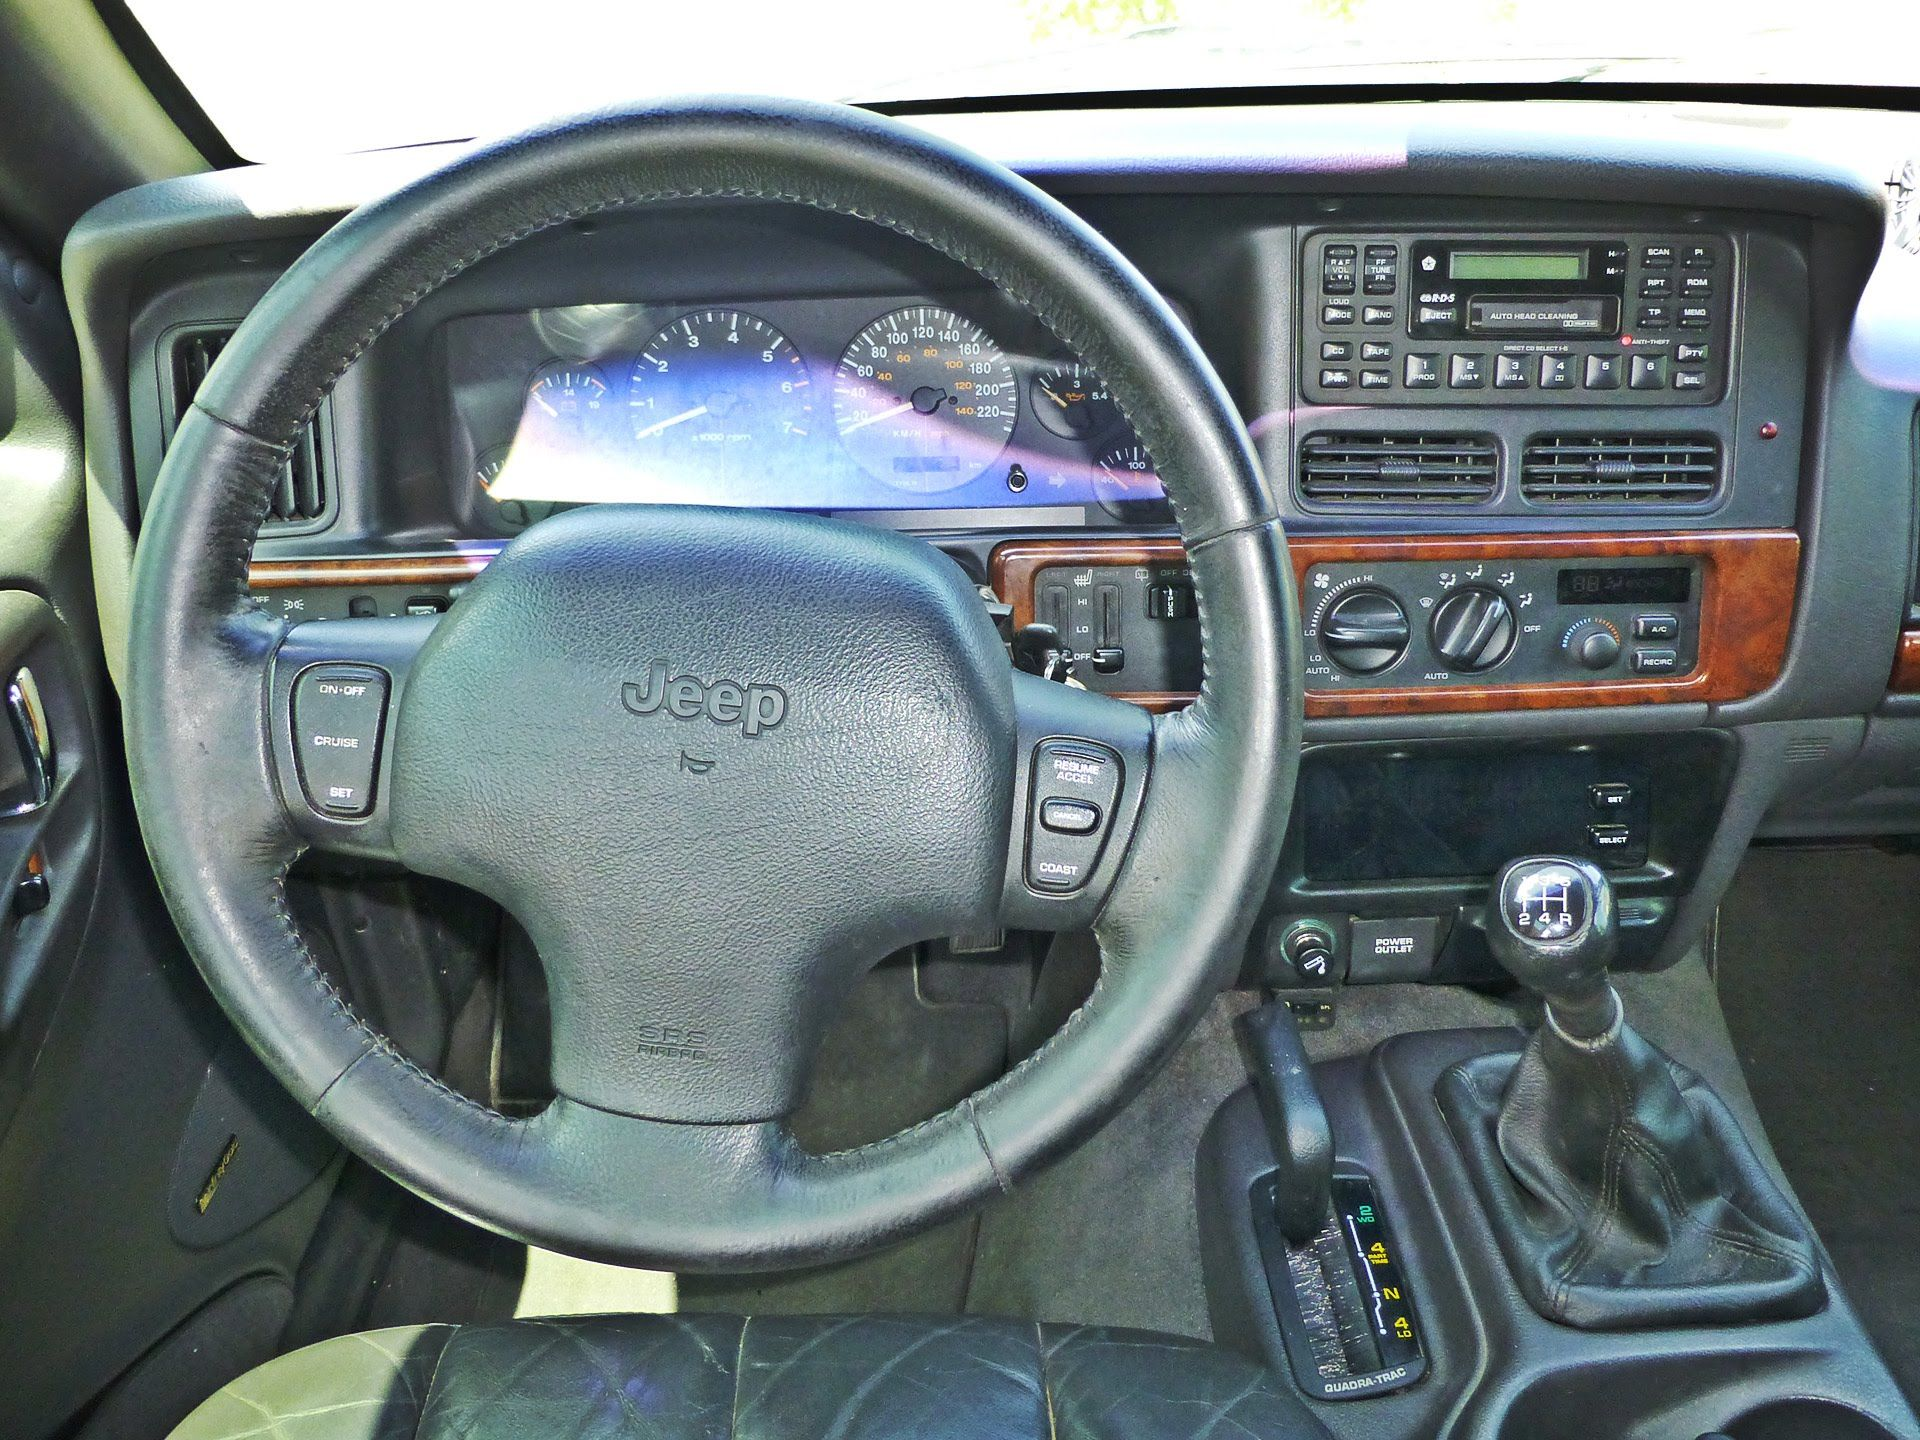 96 jeep grand cherokee transmission jpeg http carimagescolay casa 96